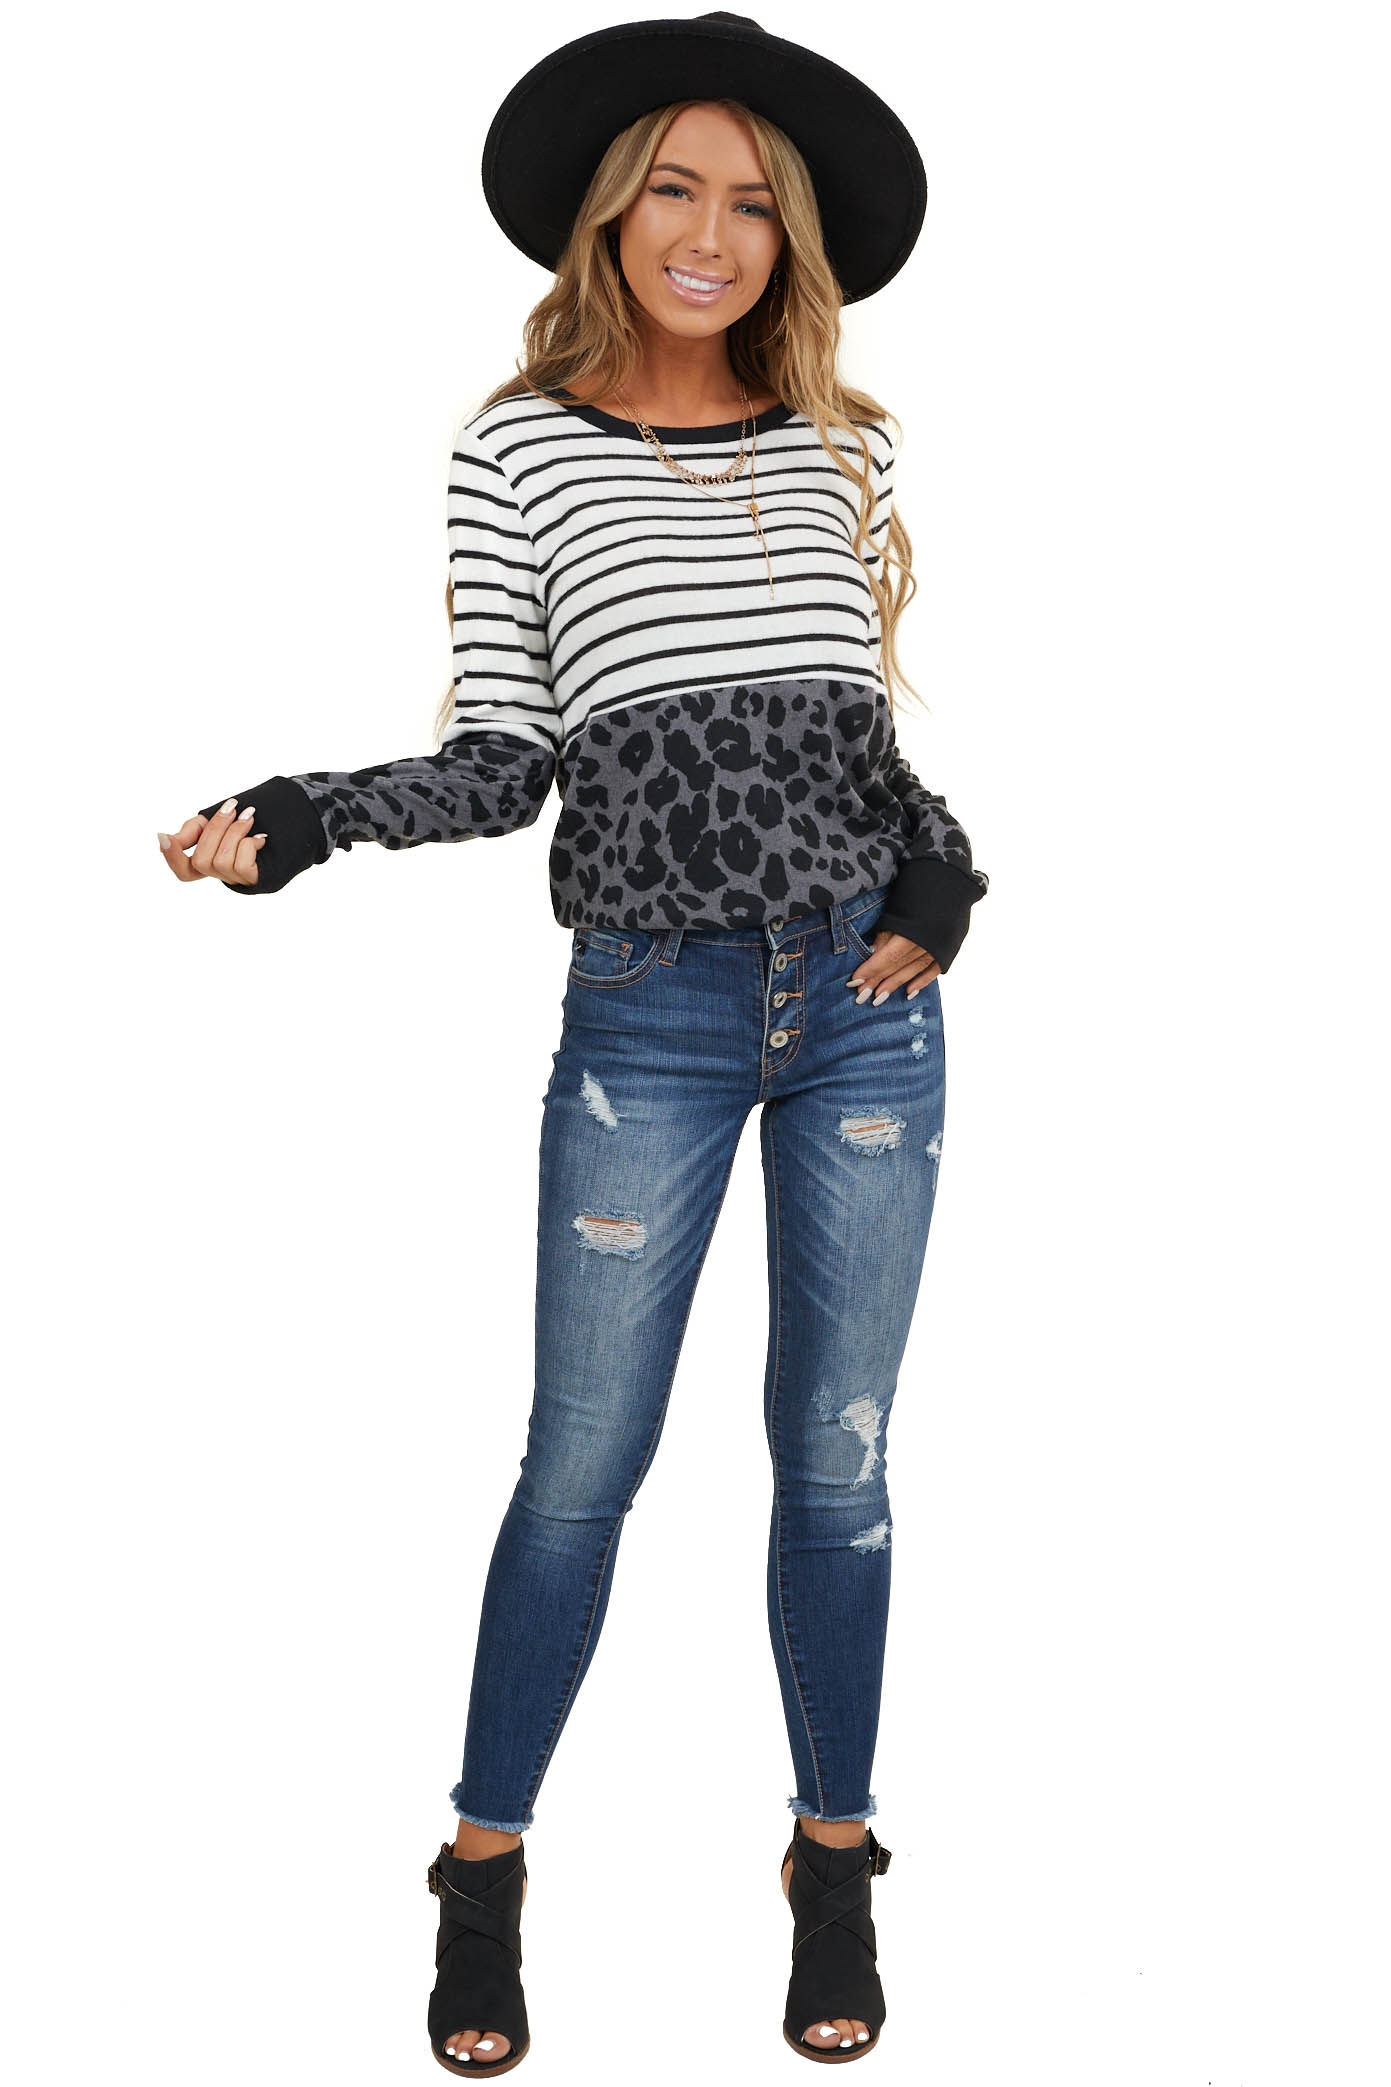 Ivory Stripe Print Long Sleeve Knit Top with Leopard Print